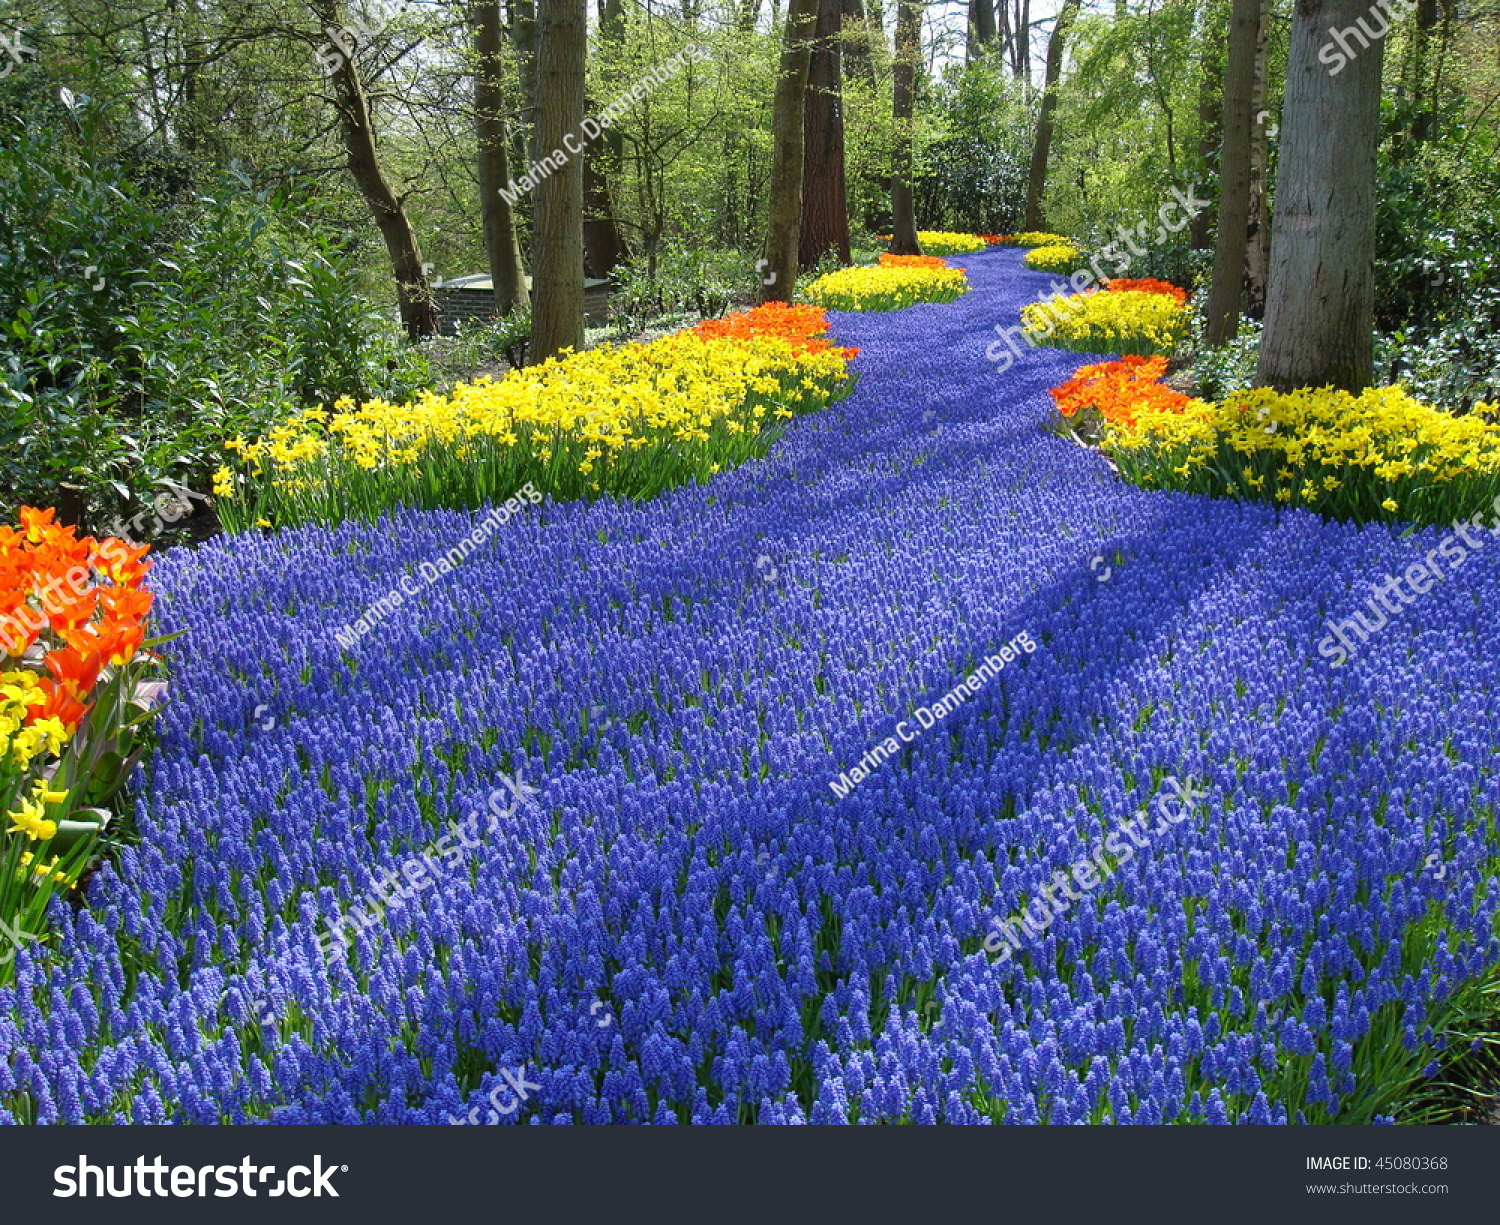 Lane colorful spring flowers dutch spring stock photo royalty free lane of colorful spring flowers in dutch spring garden keukenhof the netherlands mightylinksfo